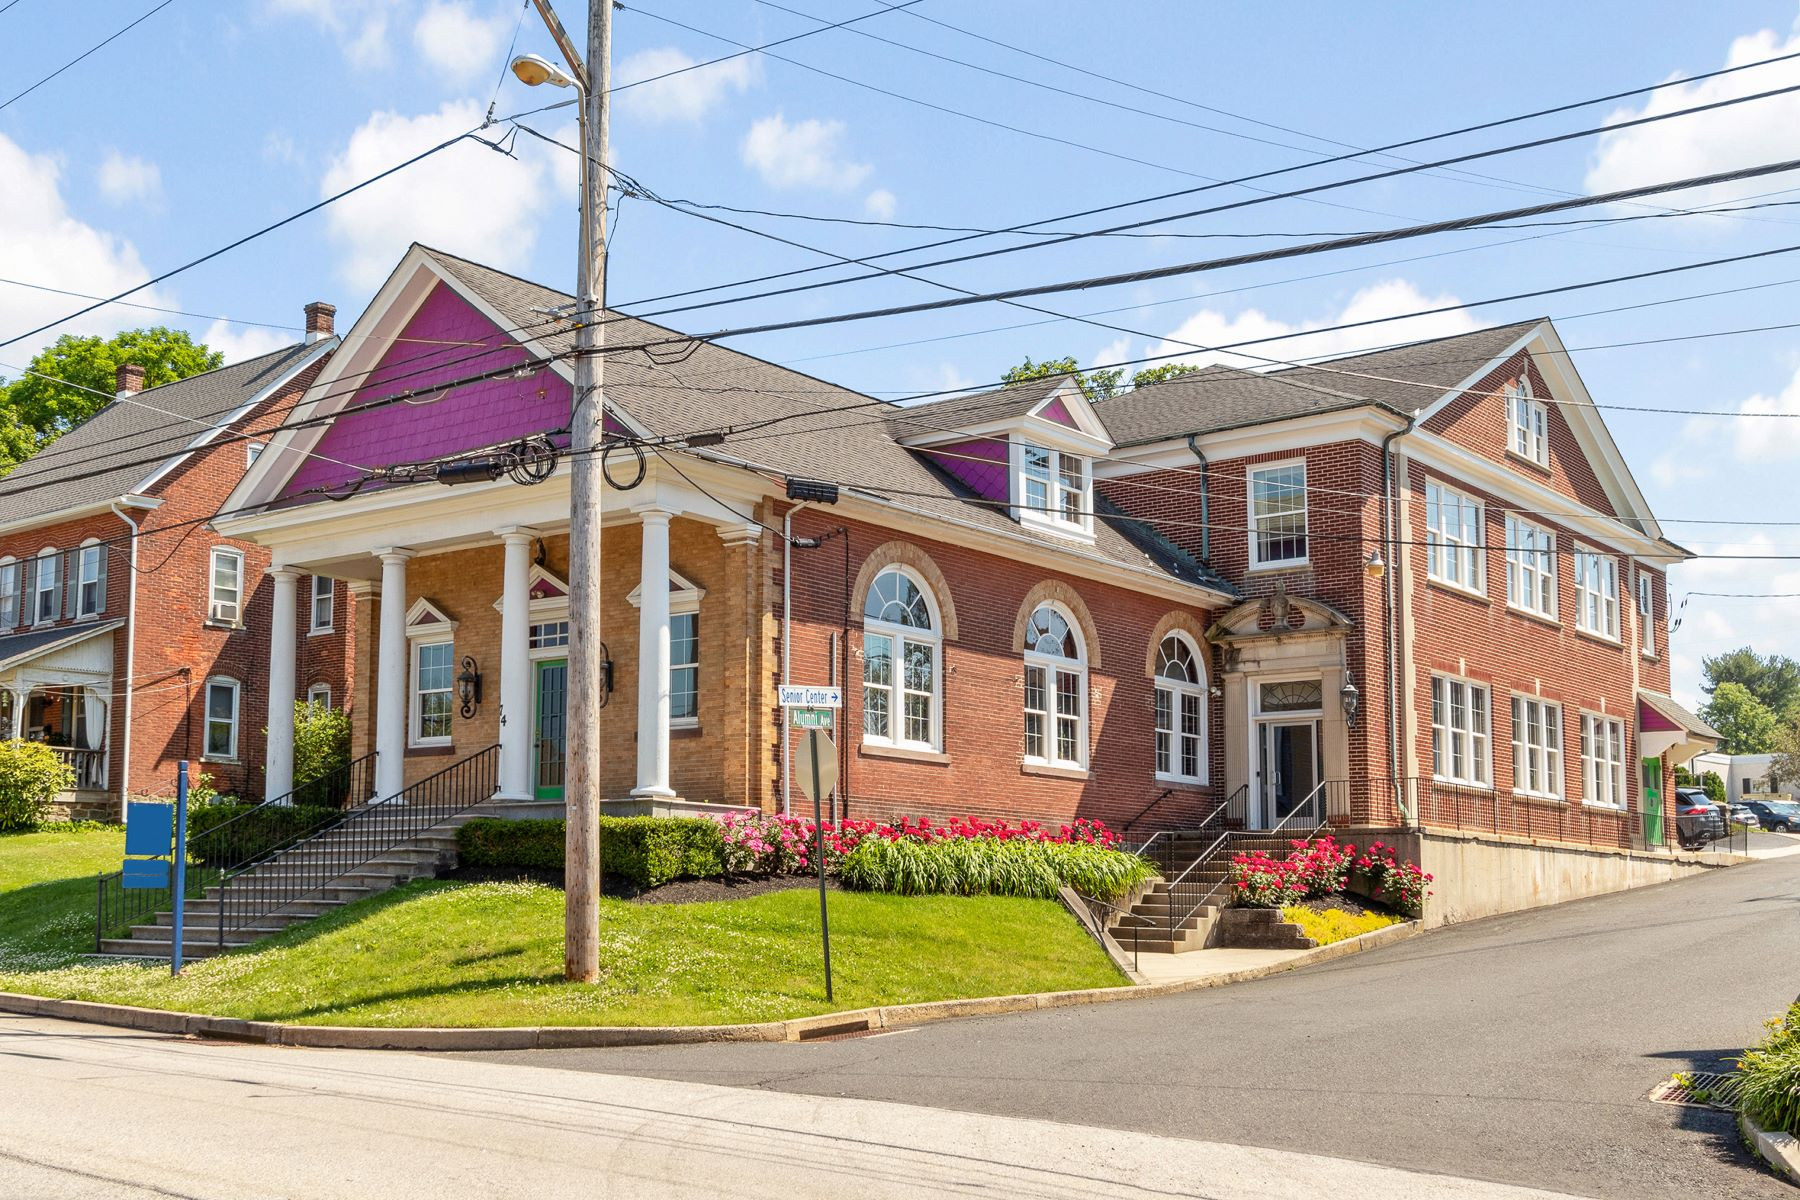 Single Family Homes for Sale at Harleysville, Pennsylvania 19438 United States